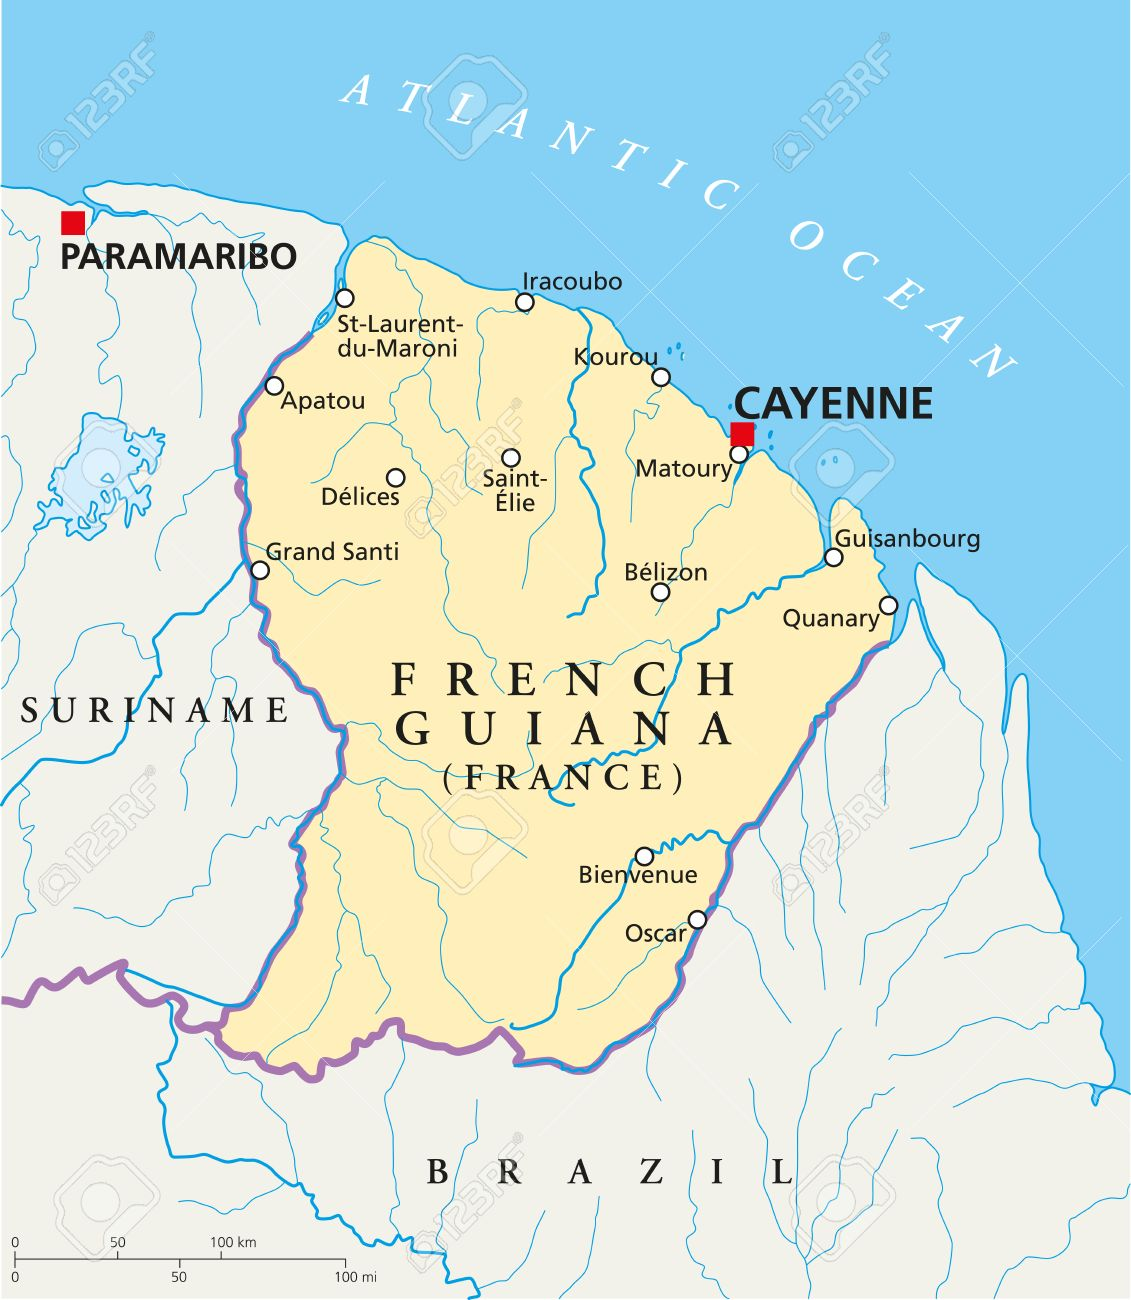 Map Of France With Cities And Rivers.French Guiana Political Map With Capital Cayenne National Borders